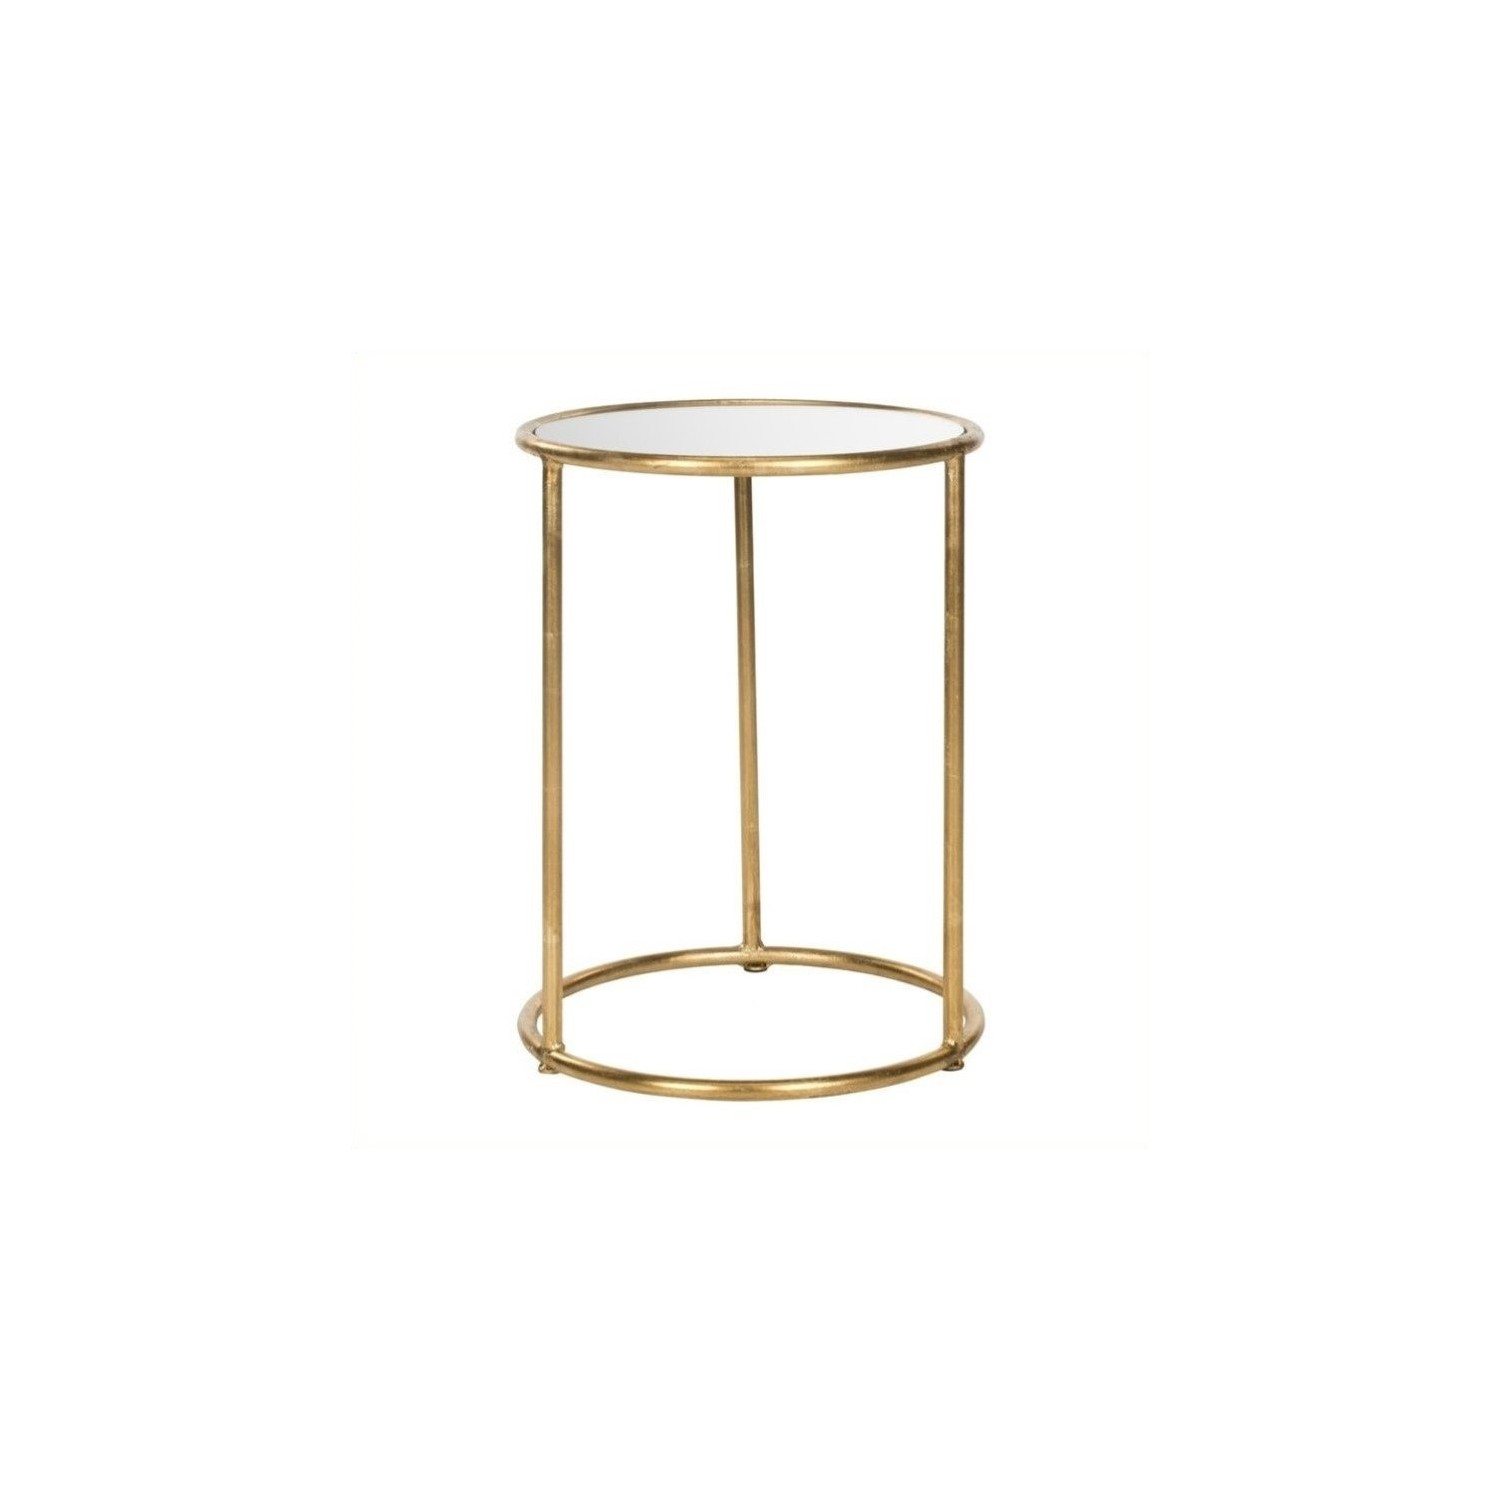 Safavieh shay contemporary accent table gold online only